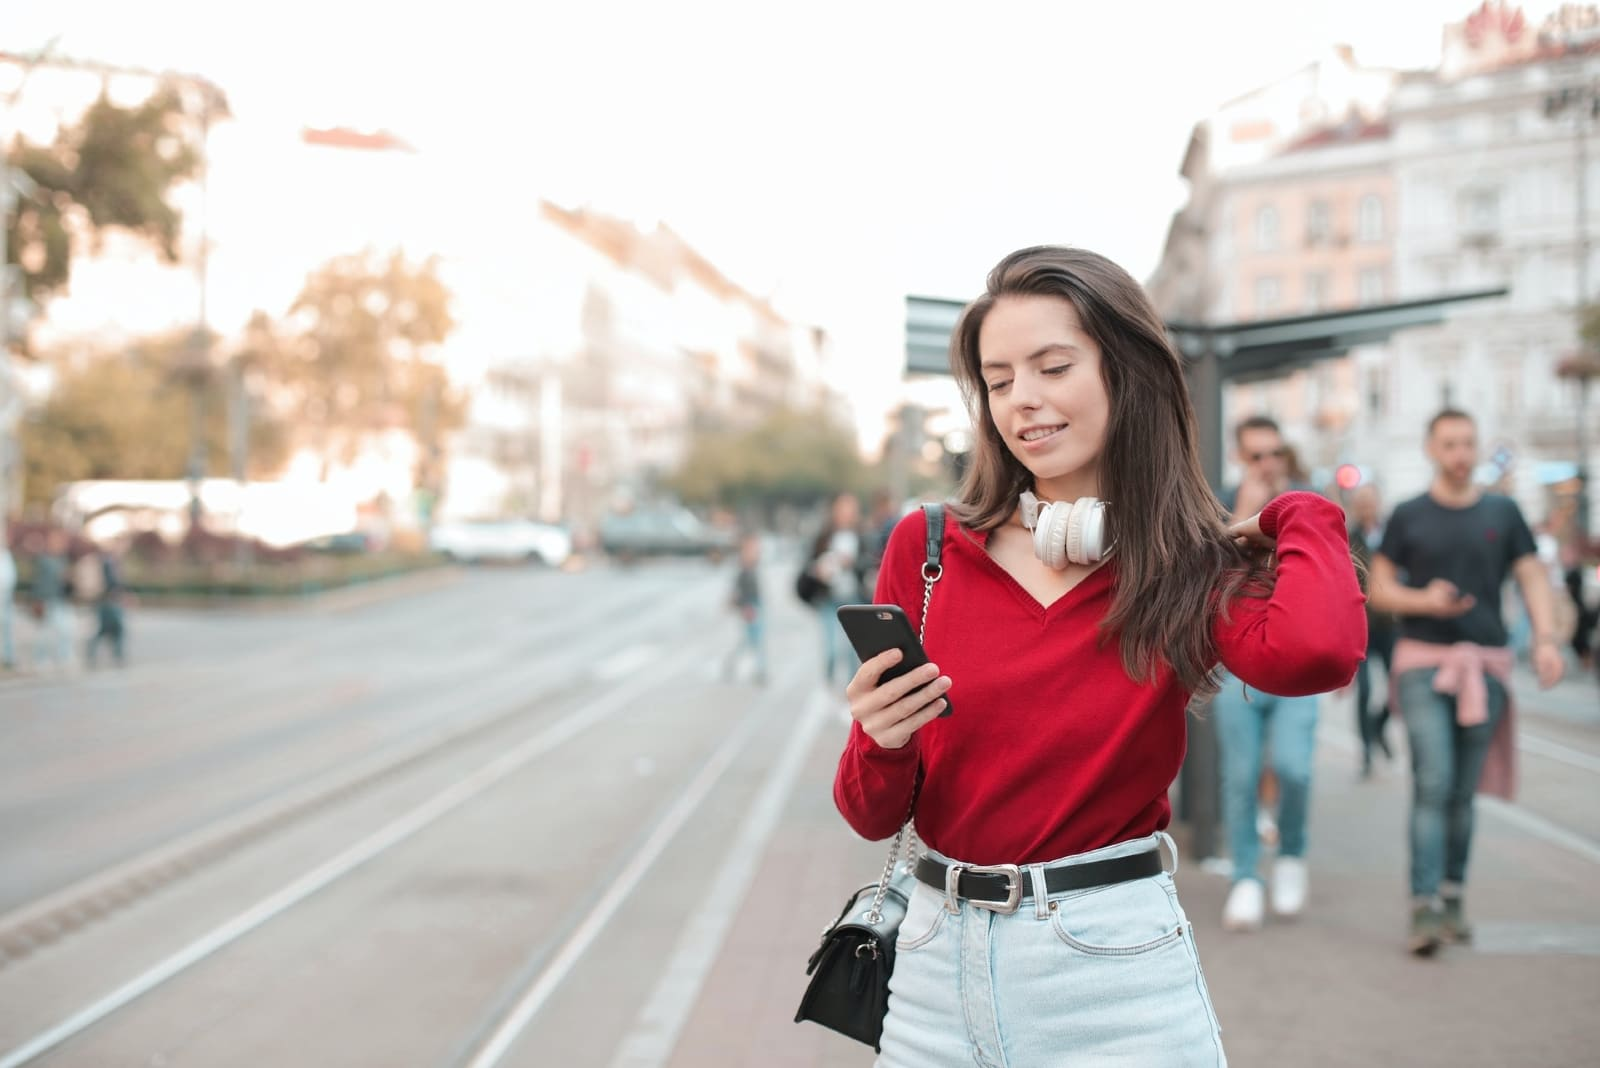 woman looking at phone while standing on street